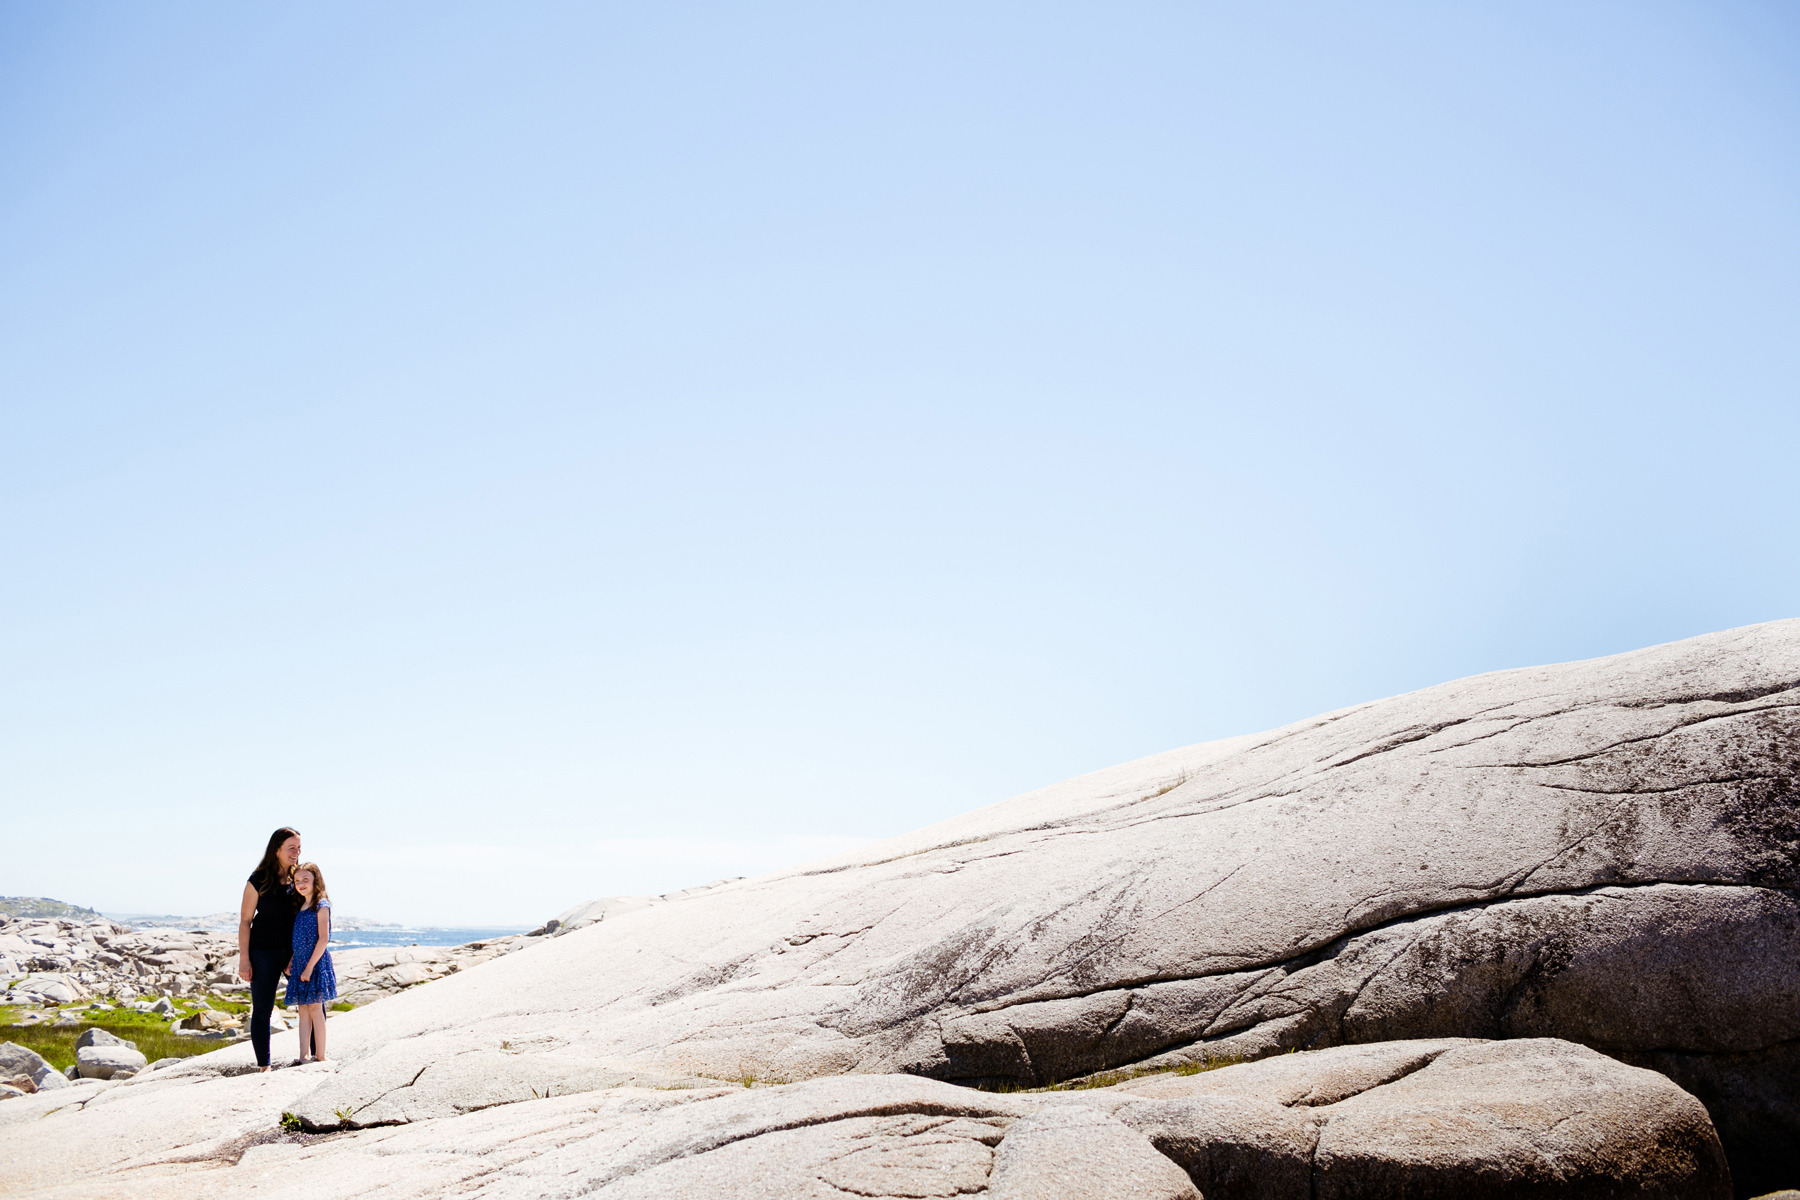 006-peggys-cove-mother-daughter-portraits-kandisebrown